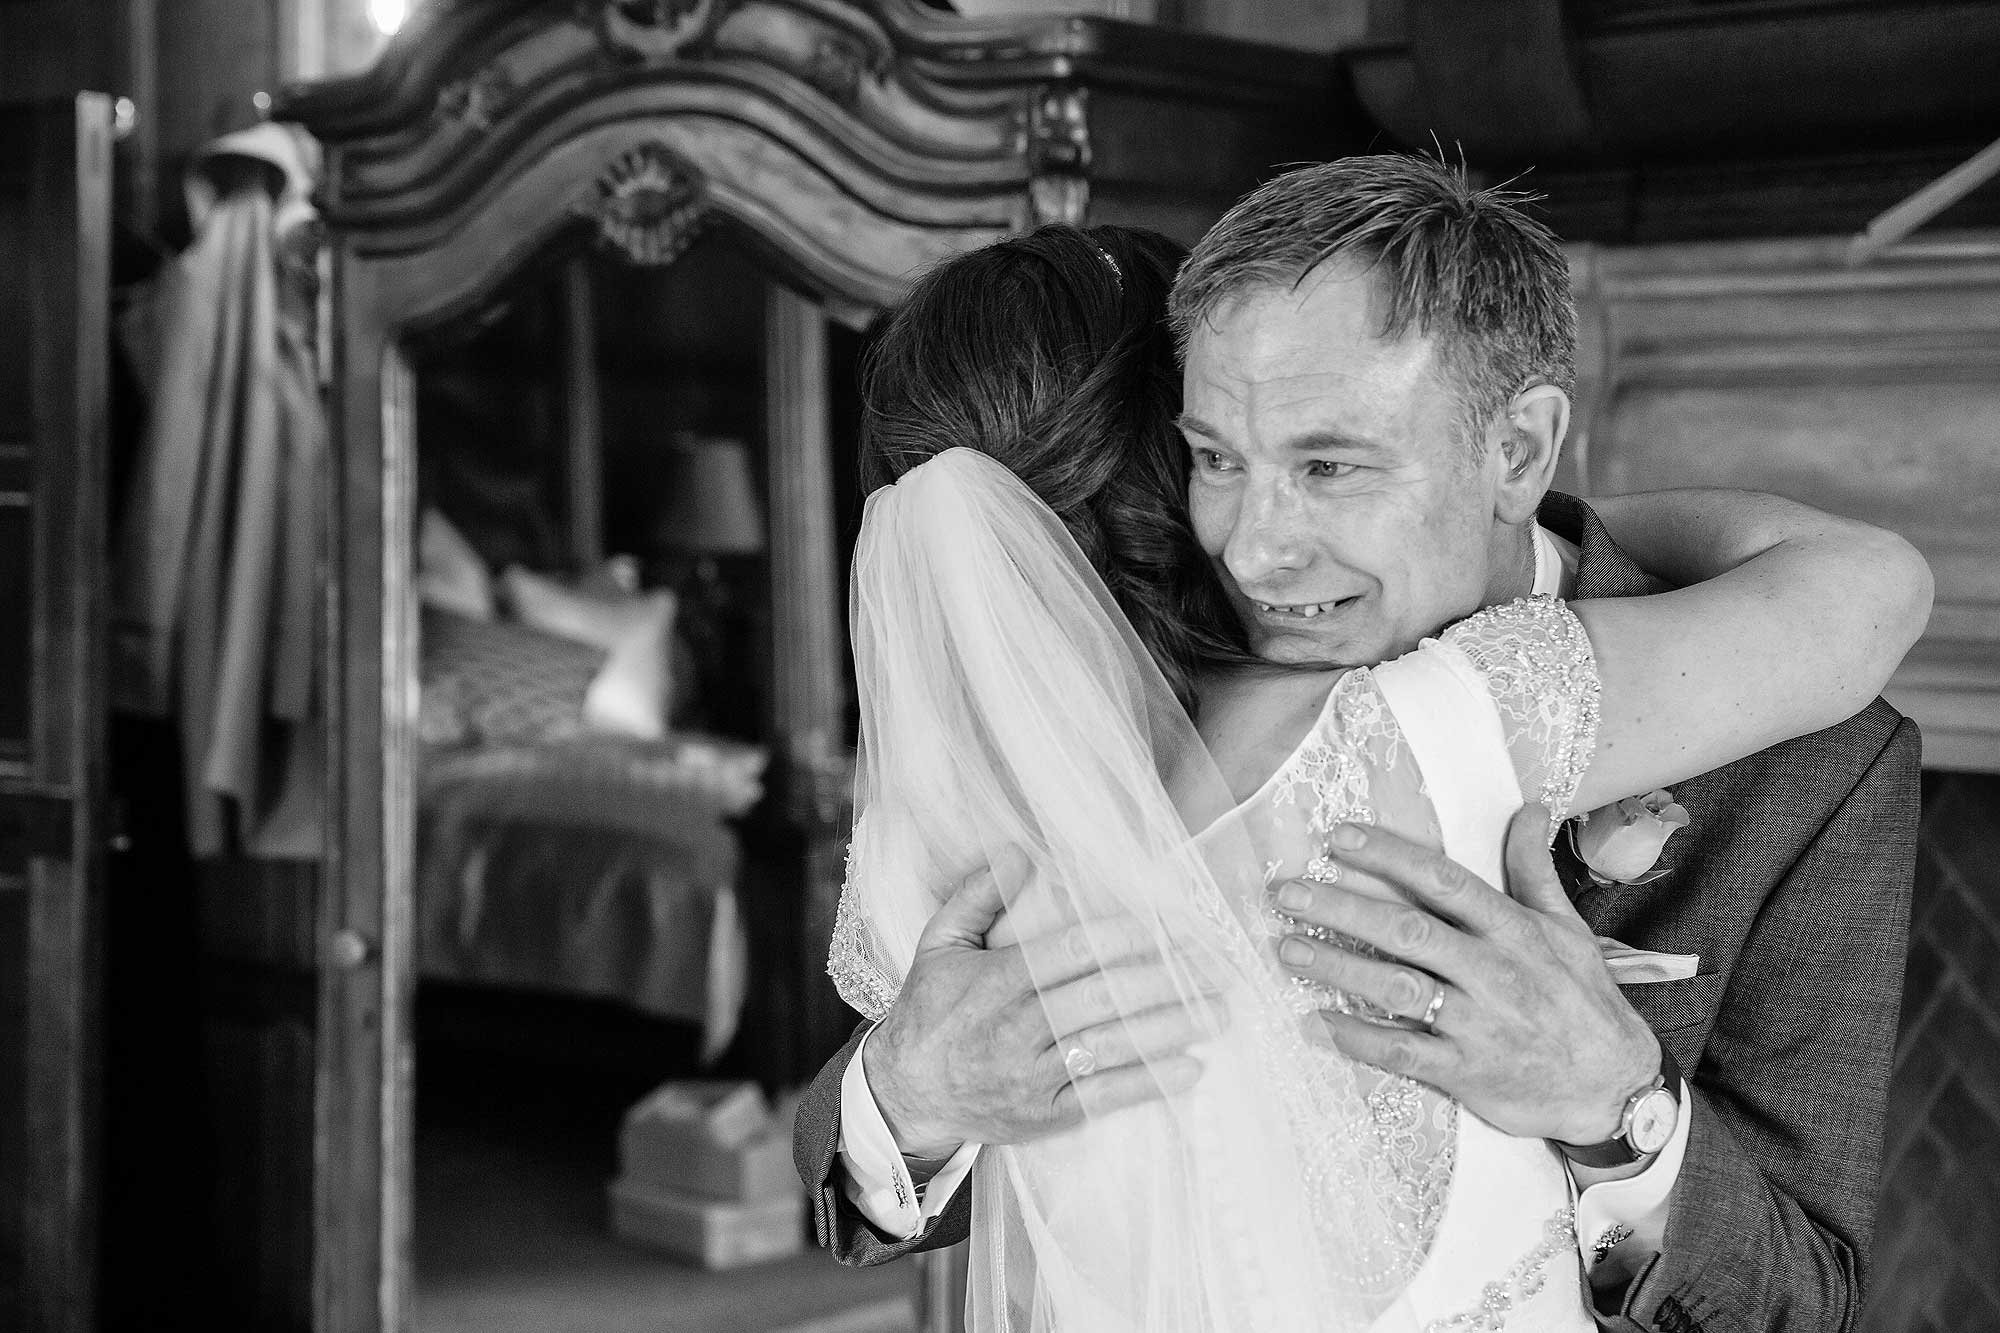 Amy's dad see's her for the first time in her wedding dress and hugs her.